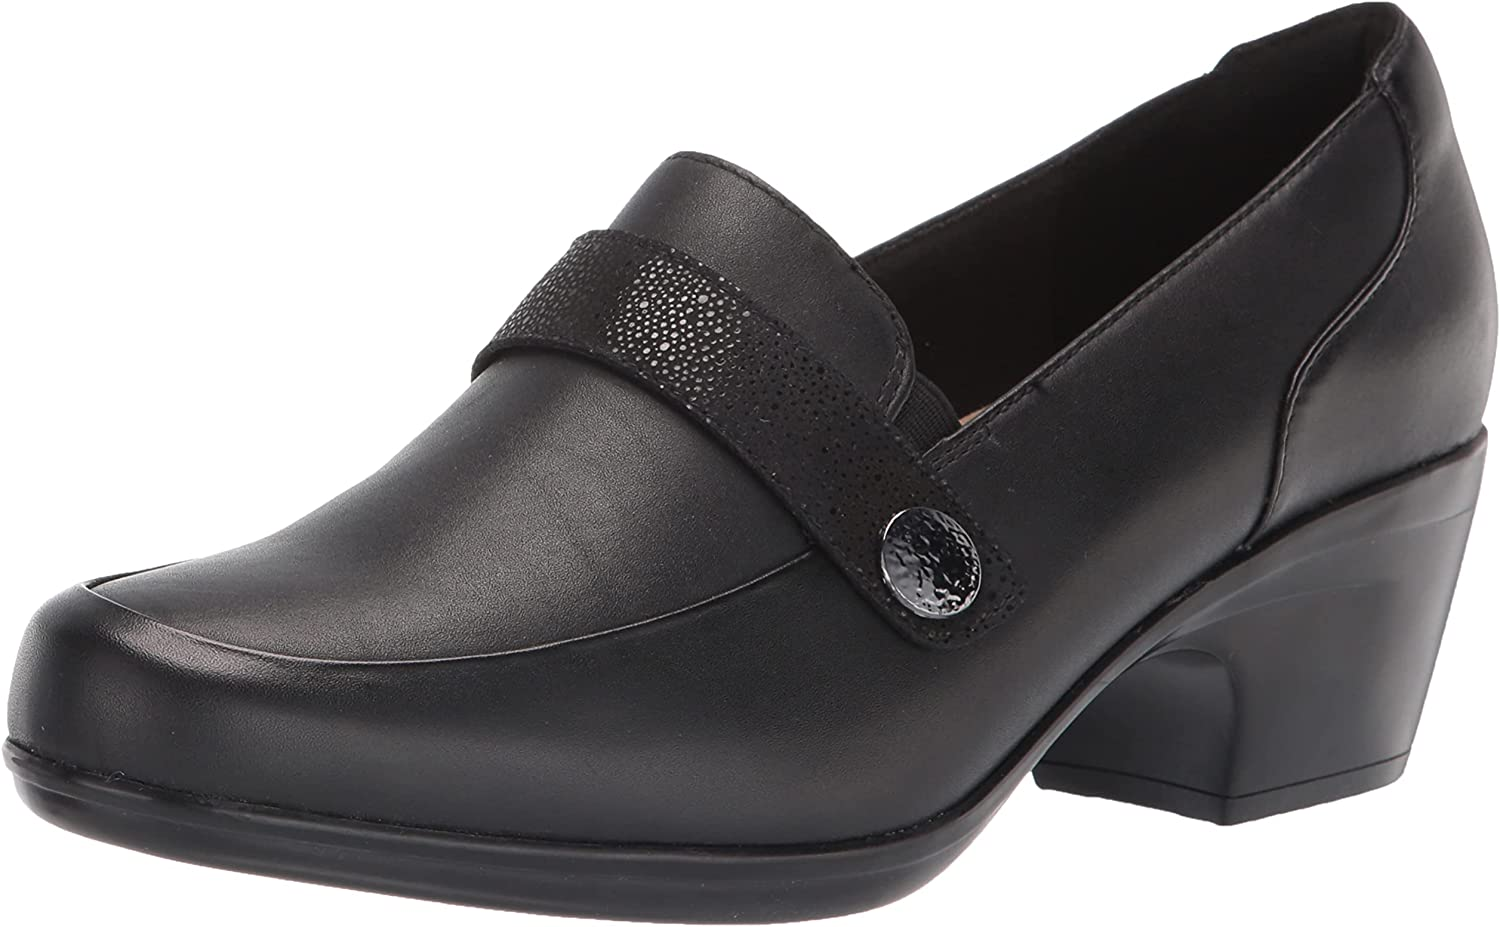 Clarks Women's Max 48% OFF Emily San Francisco Mall Loafer Andria